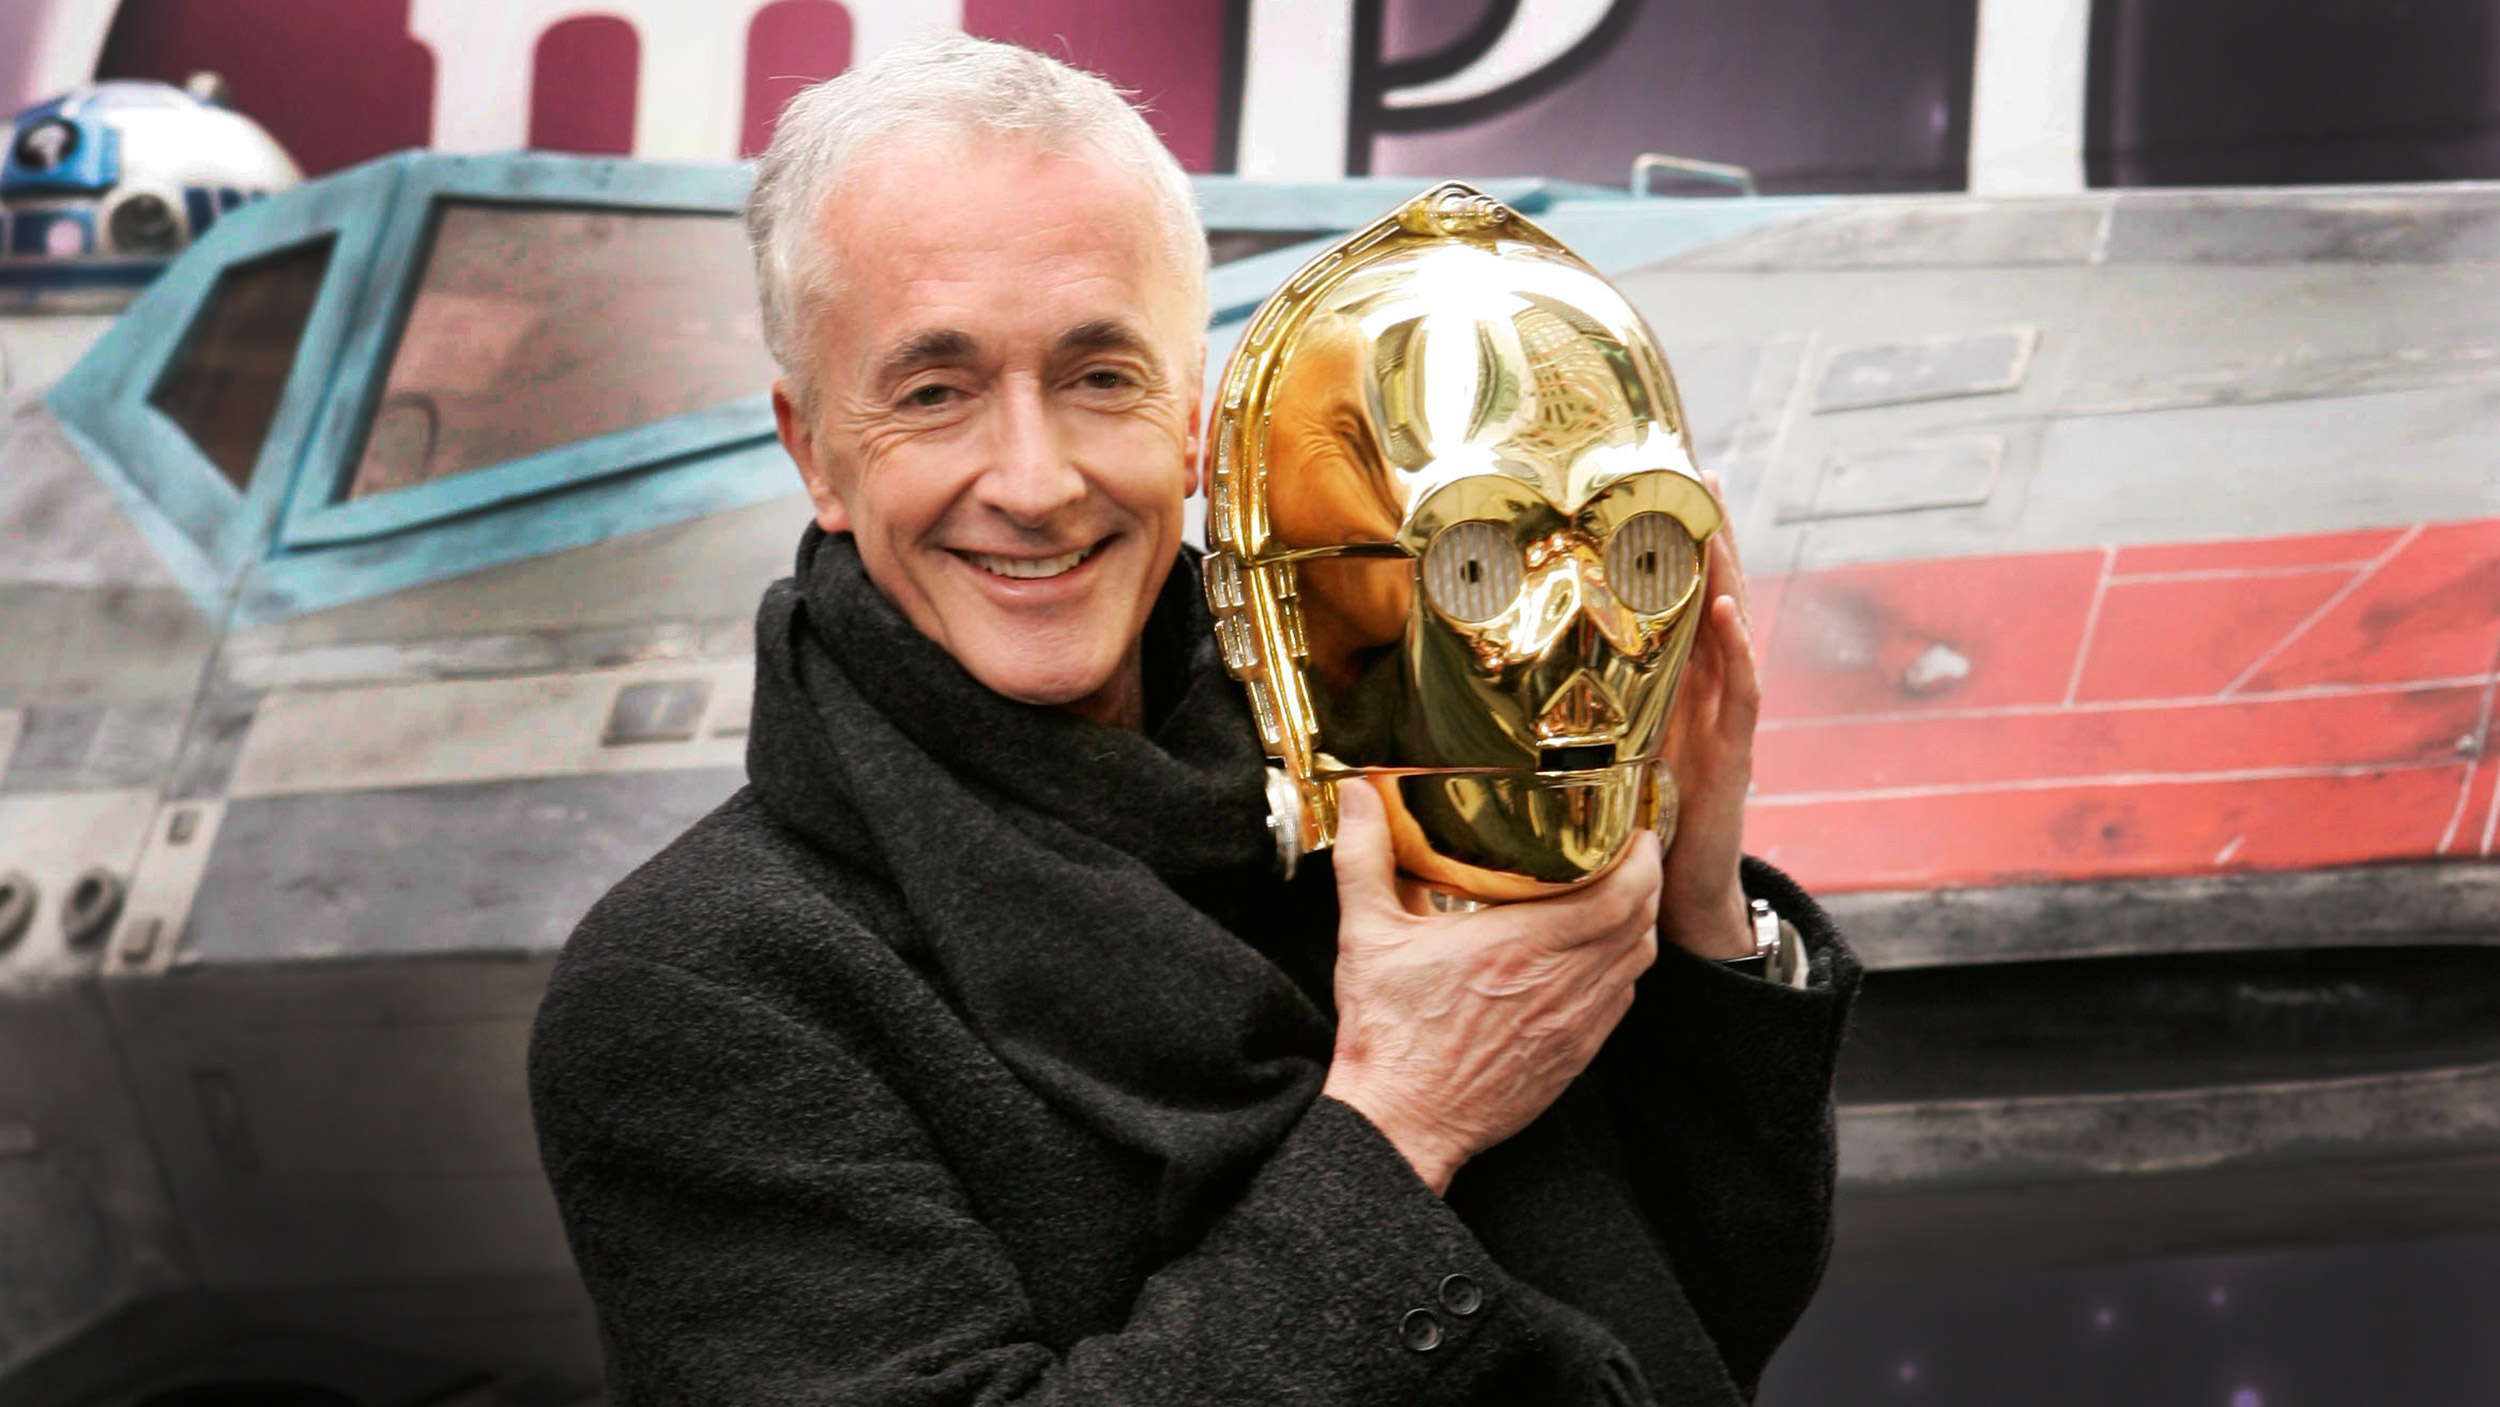 Anthony Daniels is The Protocol Man